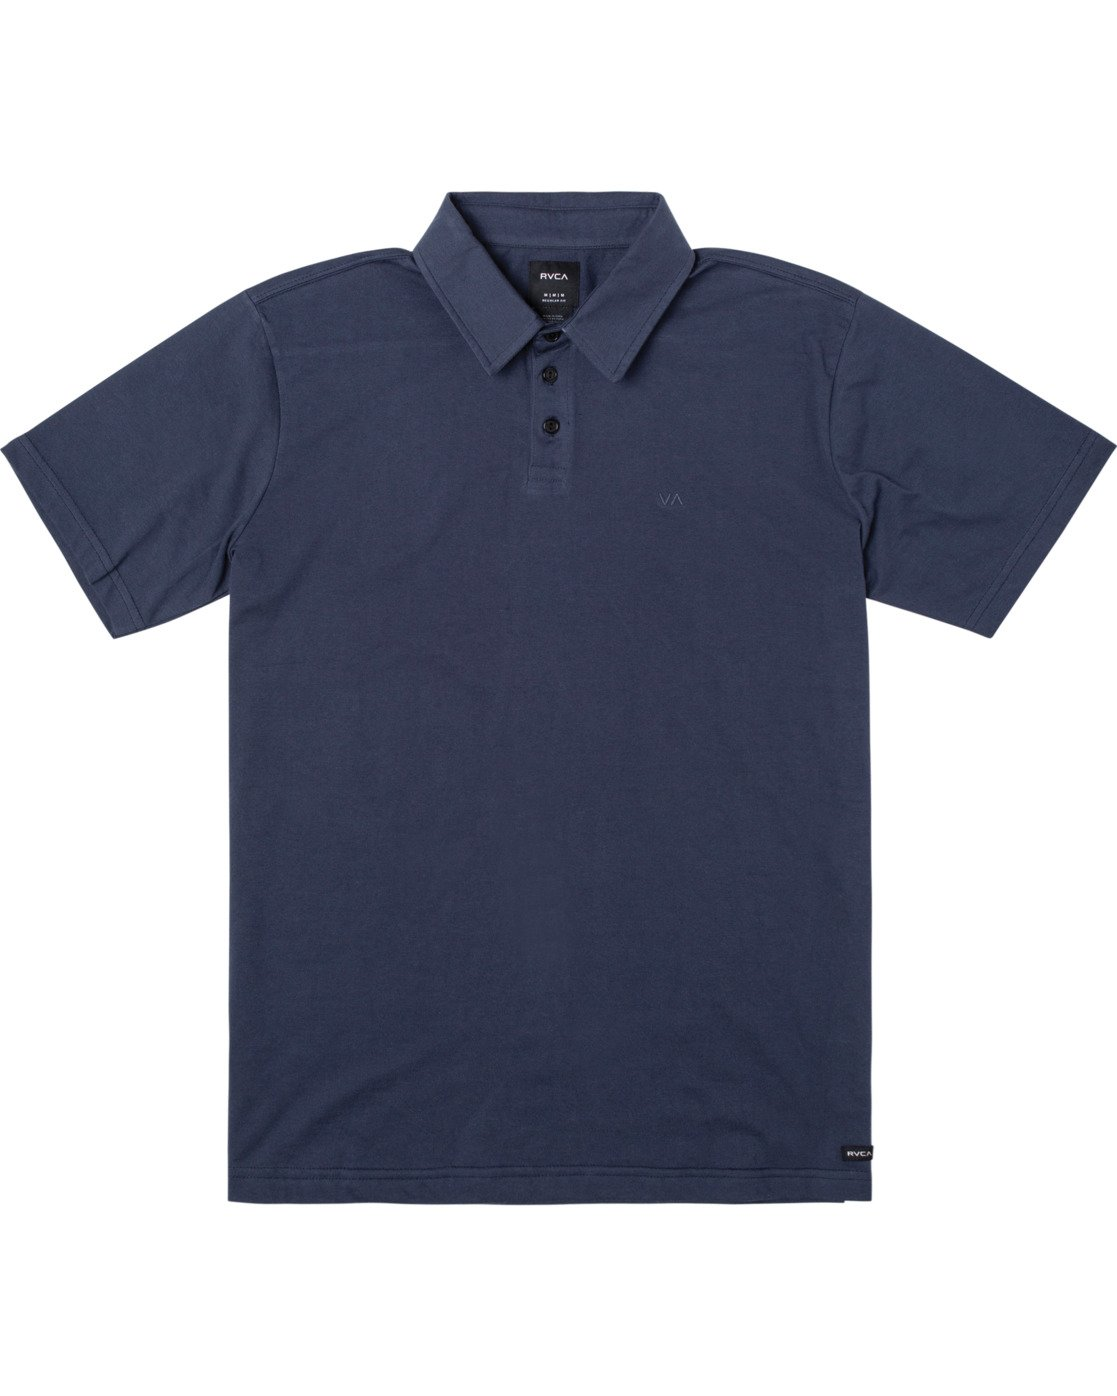 0 SURE THING III POLO SHIRT Blue M9101RST RVCA